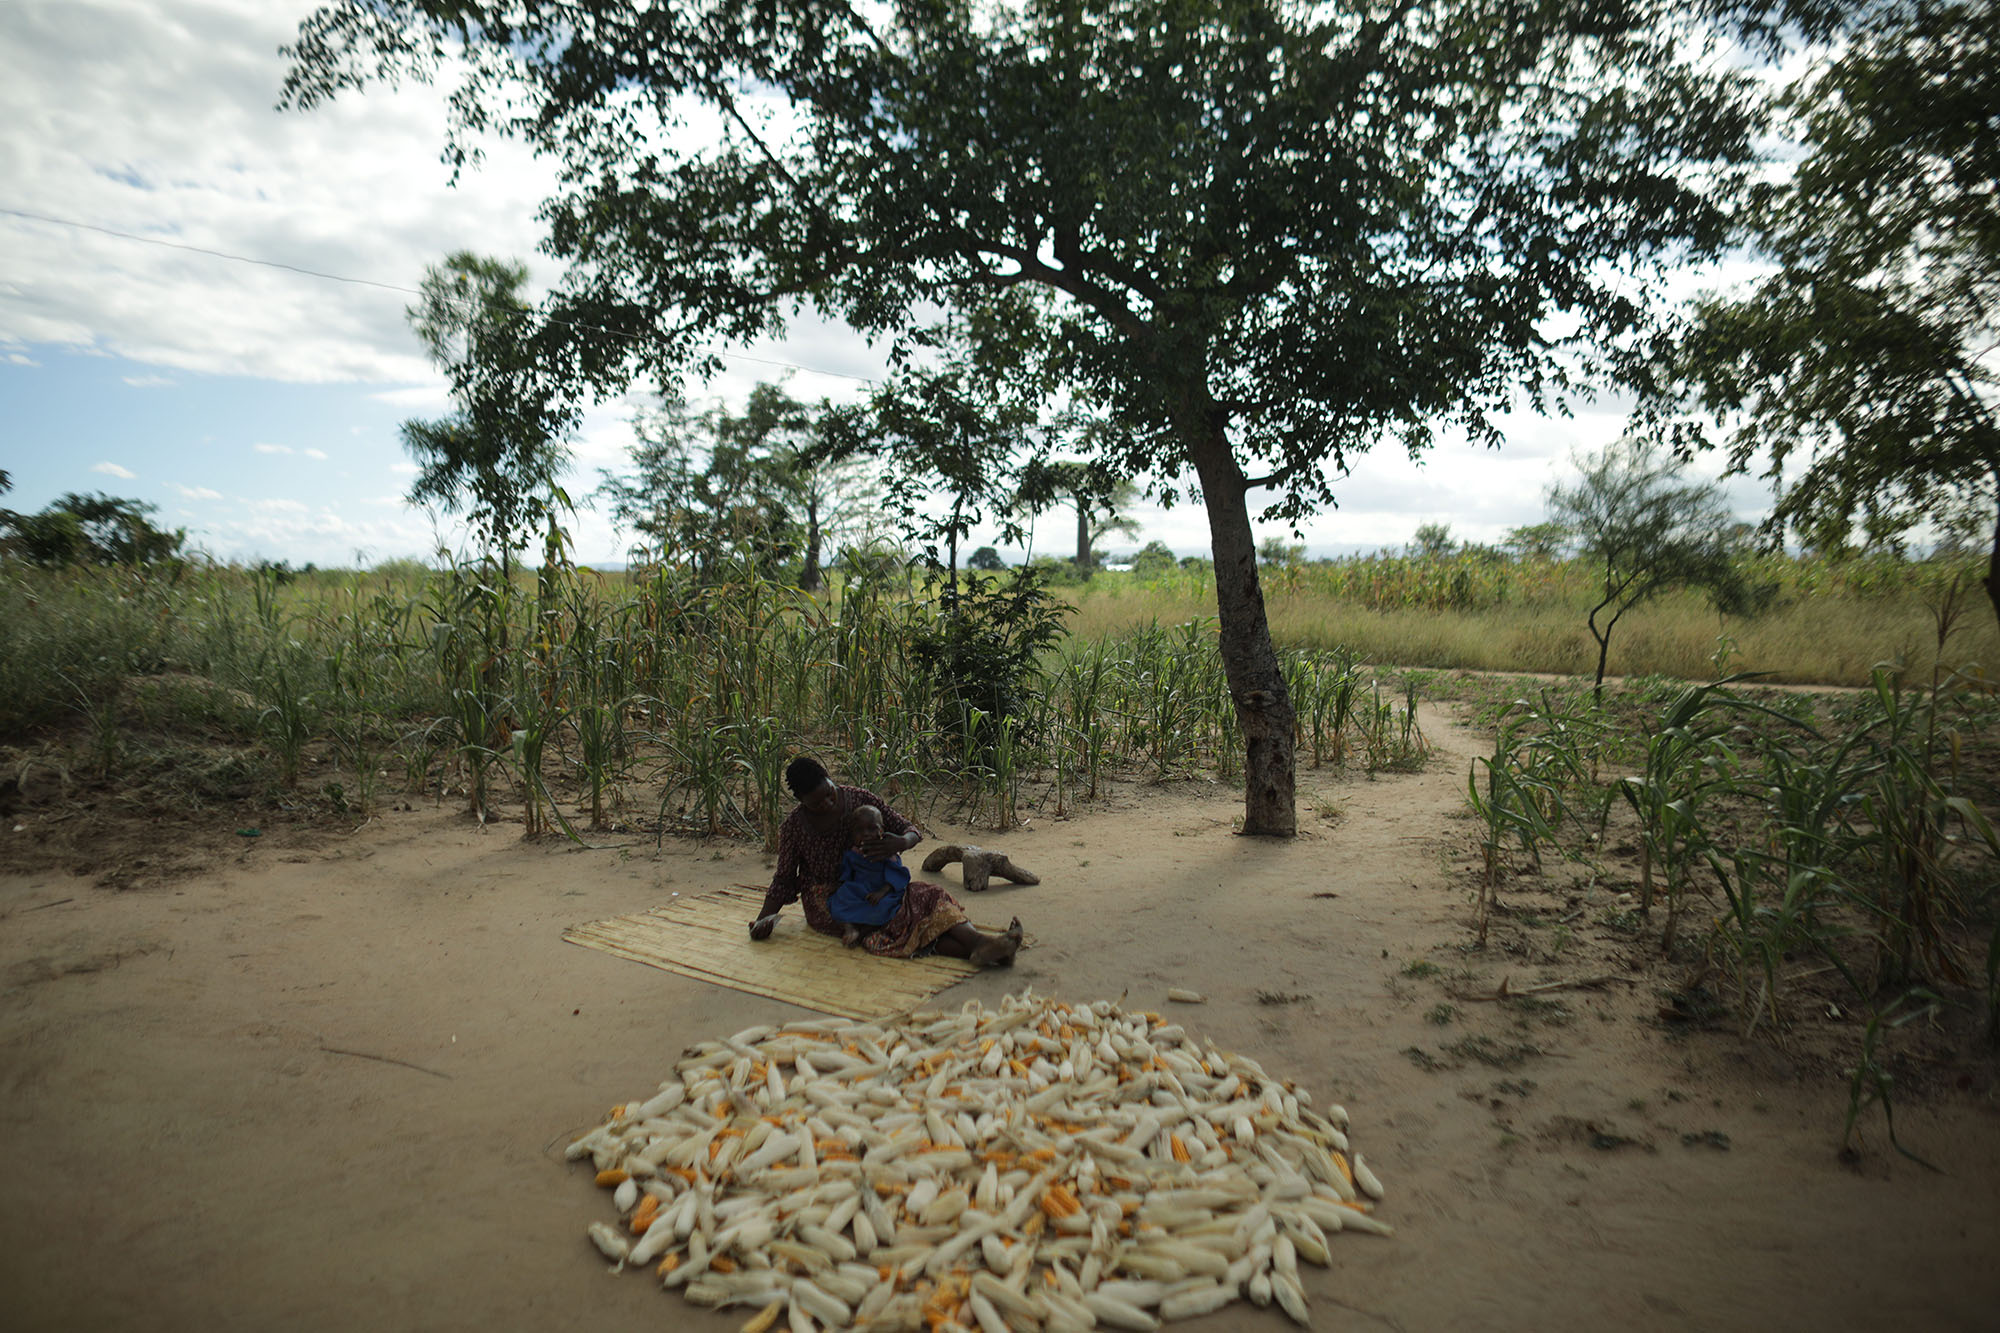 Mariam Chinguwo feeds plump nut to her daughter, Maness. Photo by Josh Estey.